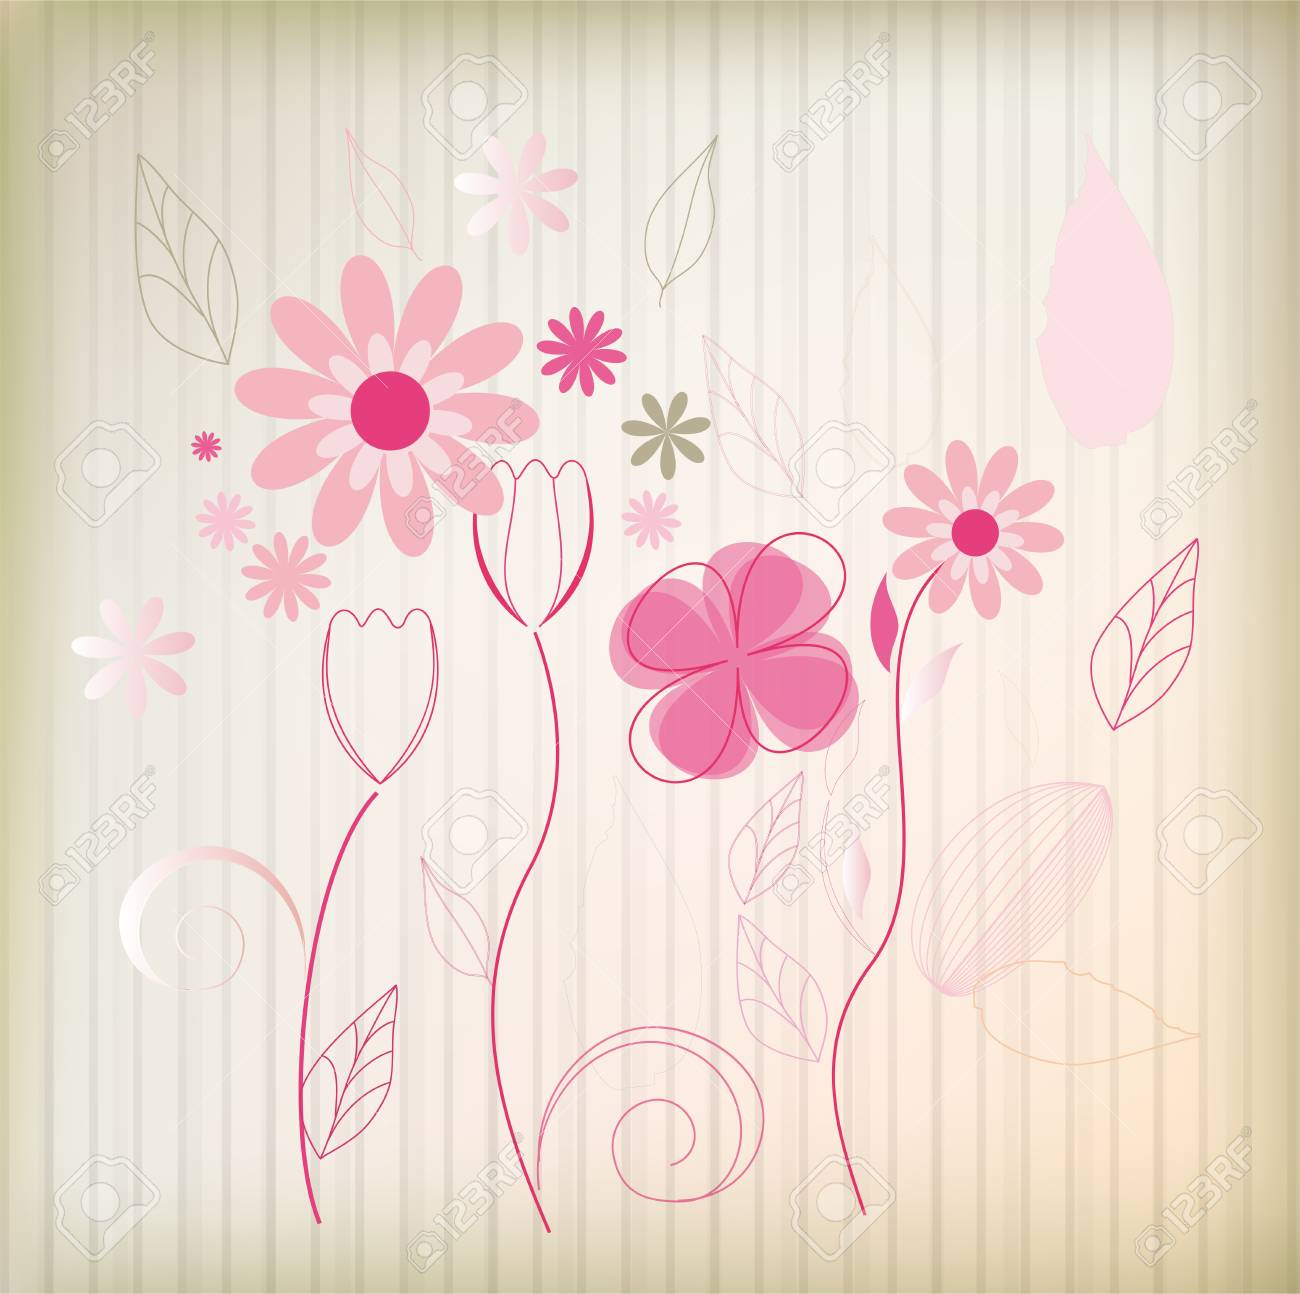 Fashion flower background   vector eps 10 Stock Vector - 14189842